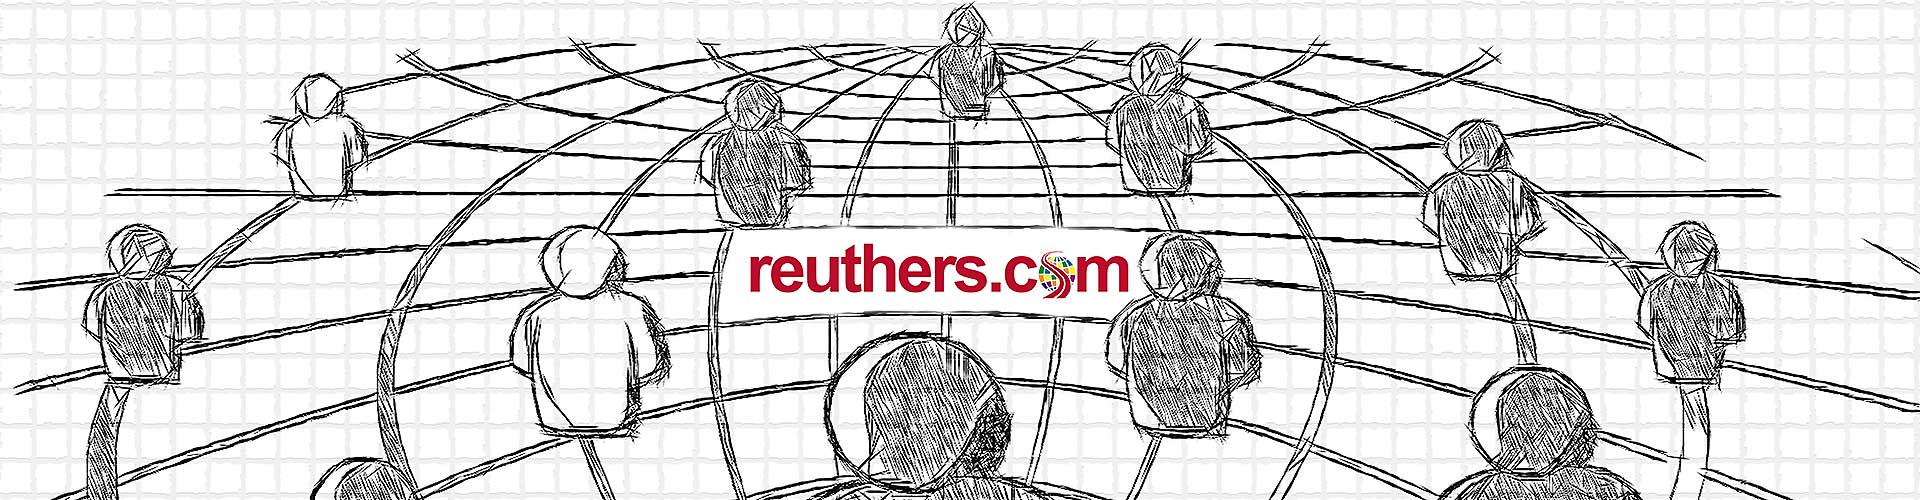 Reuthers Affiliate Programm